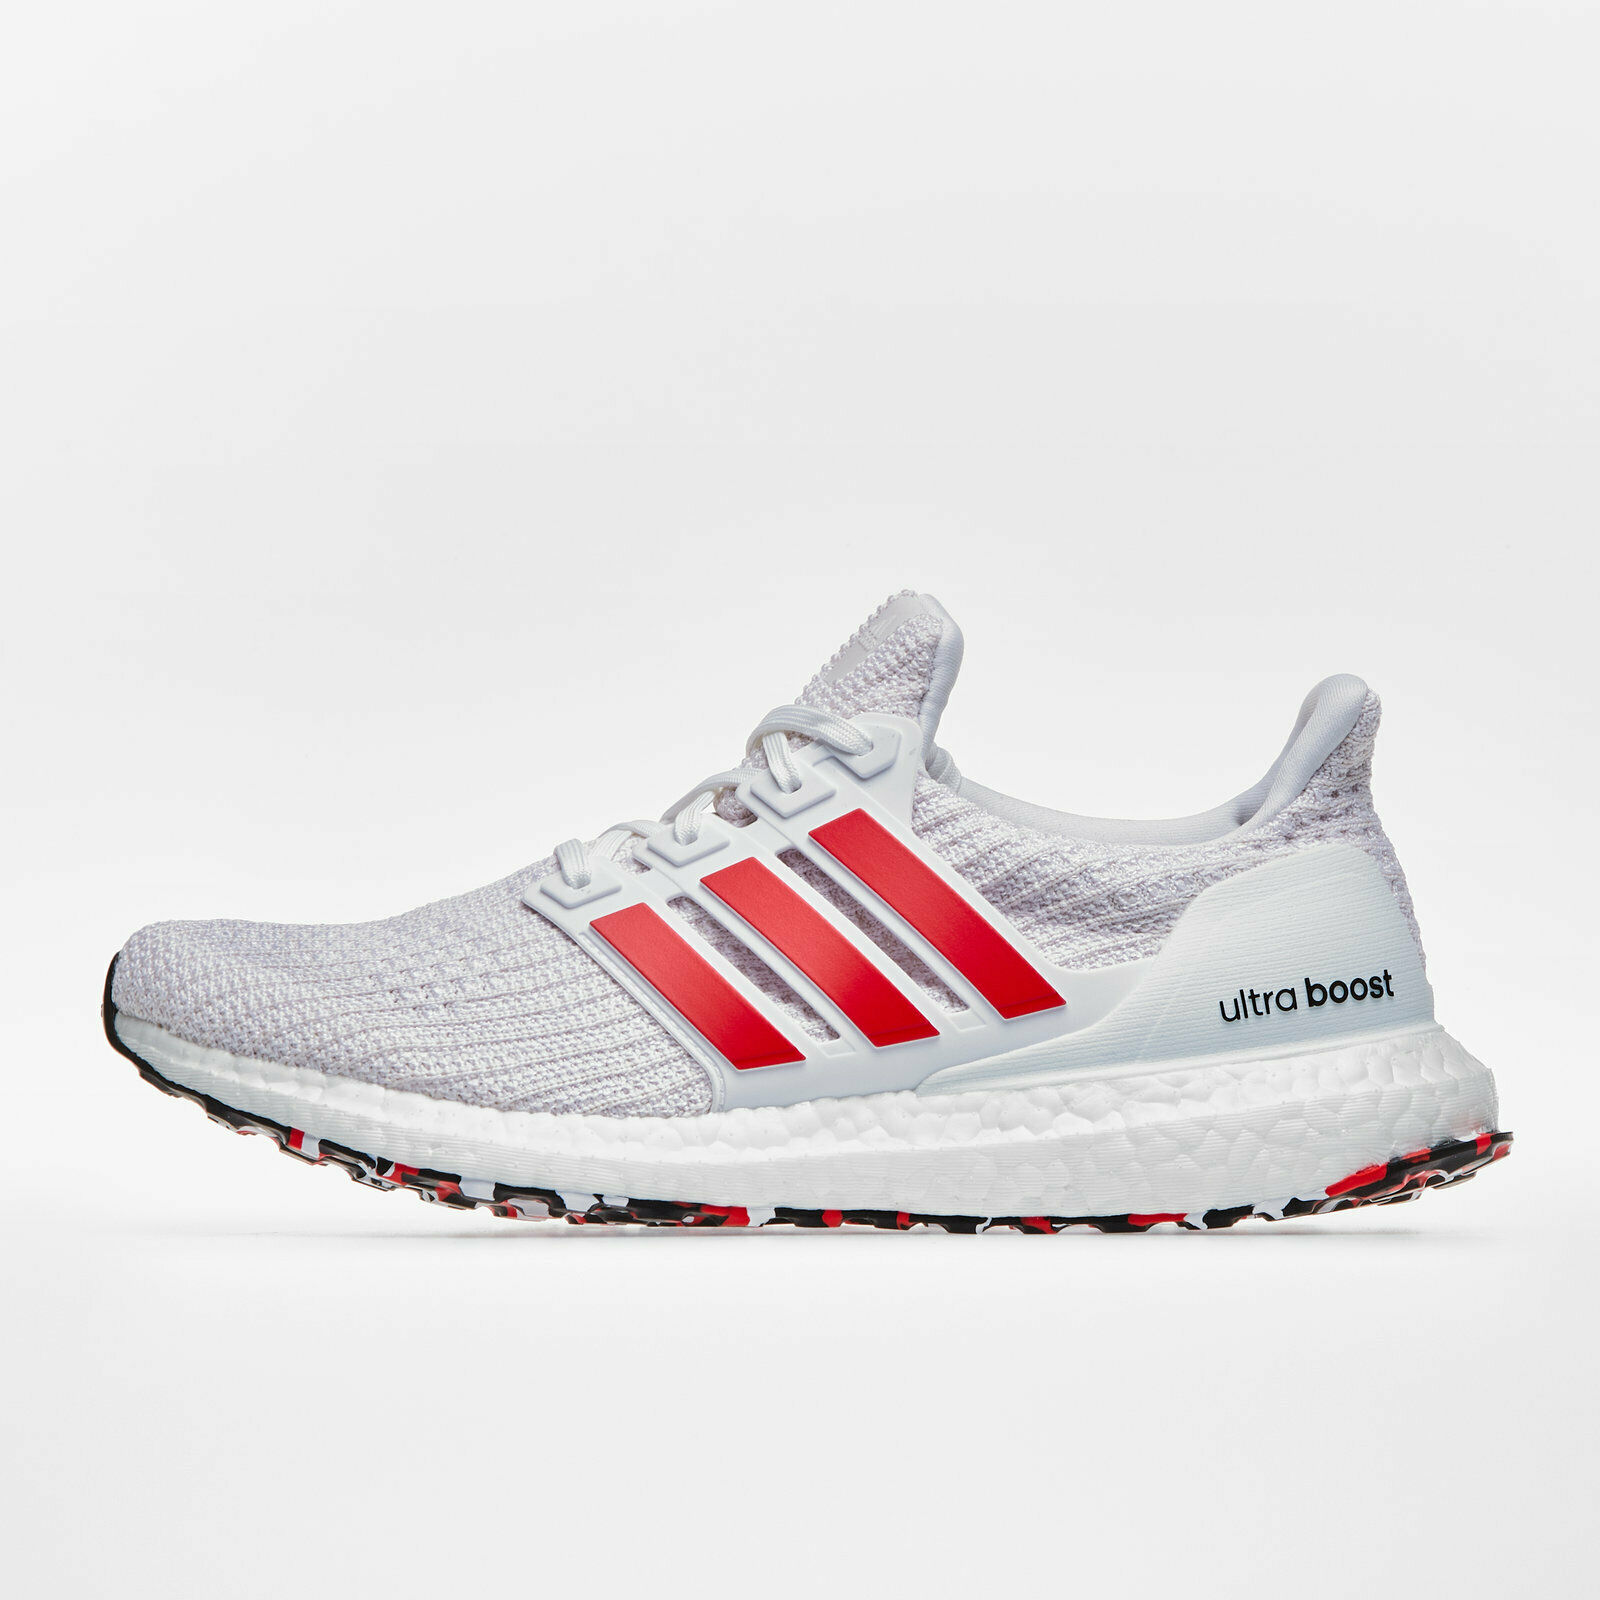 Adidas Mens Ultra Boost Running shoes Jogging Footwear Sports Trainers White